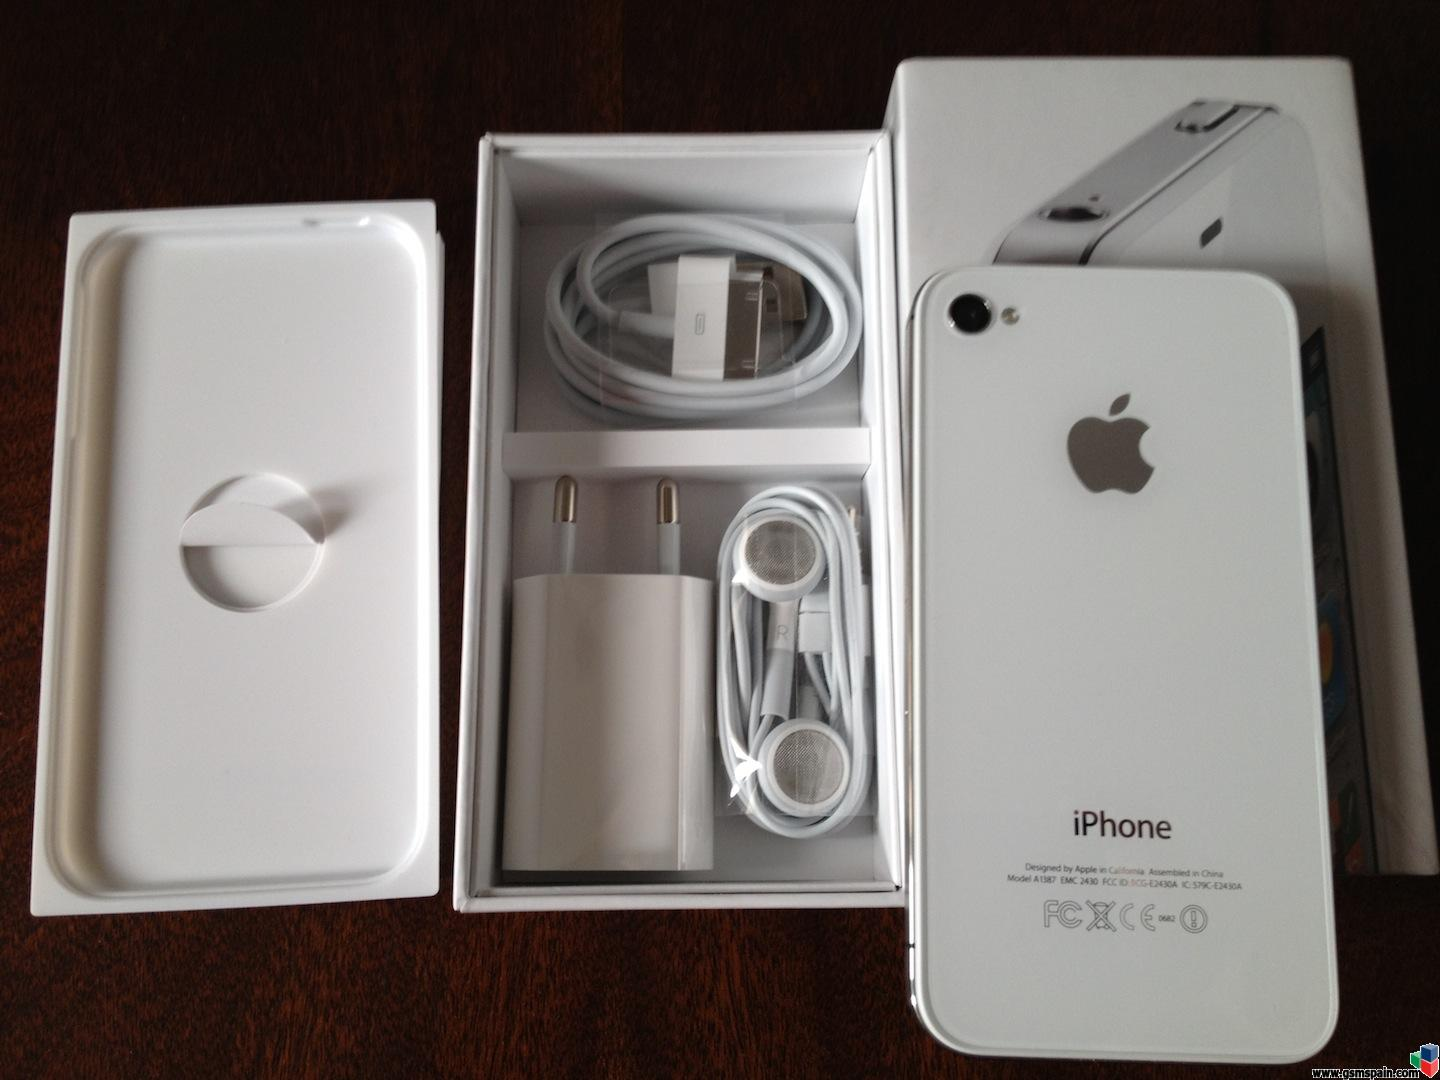 Venta De Moviles Libres Iphone Vendo Iphone 4s 16 Gb Blanco Libre De Origen Factura Y